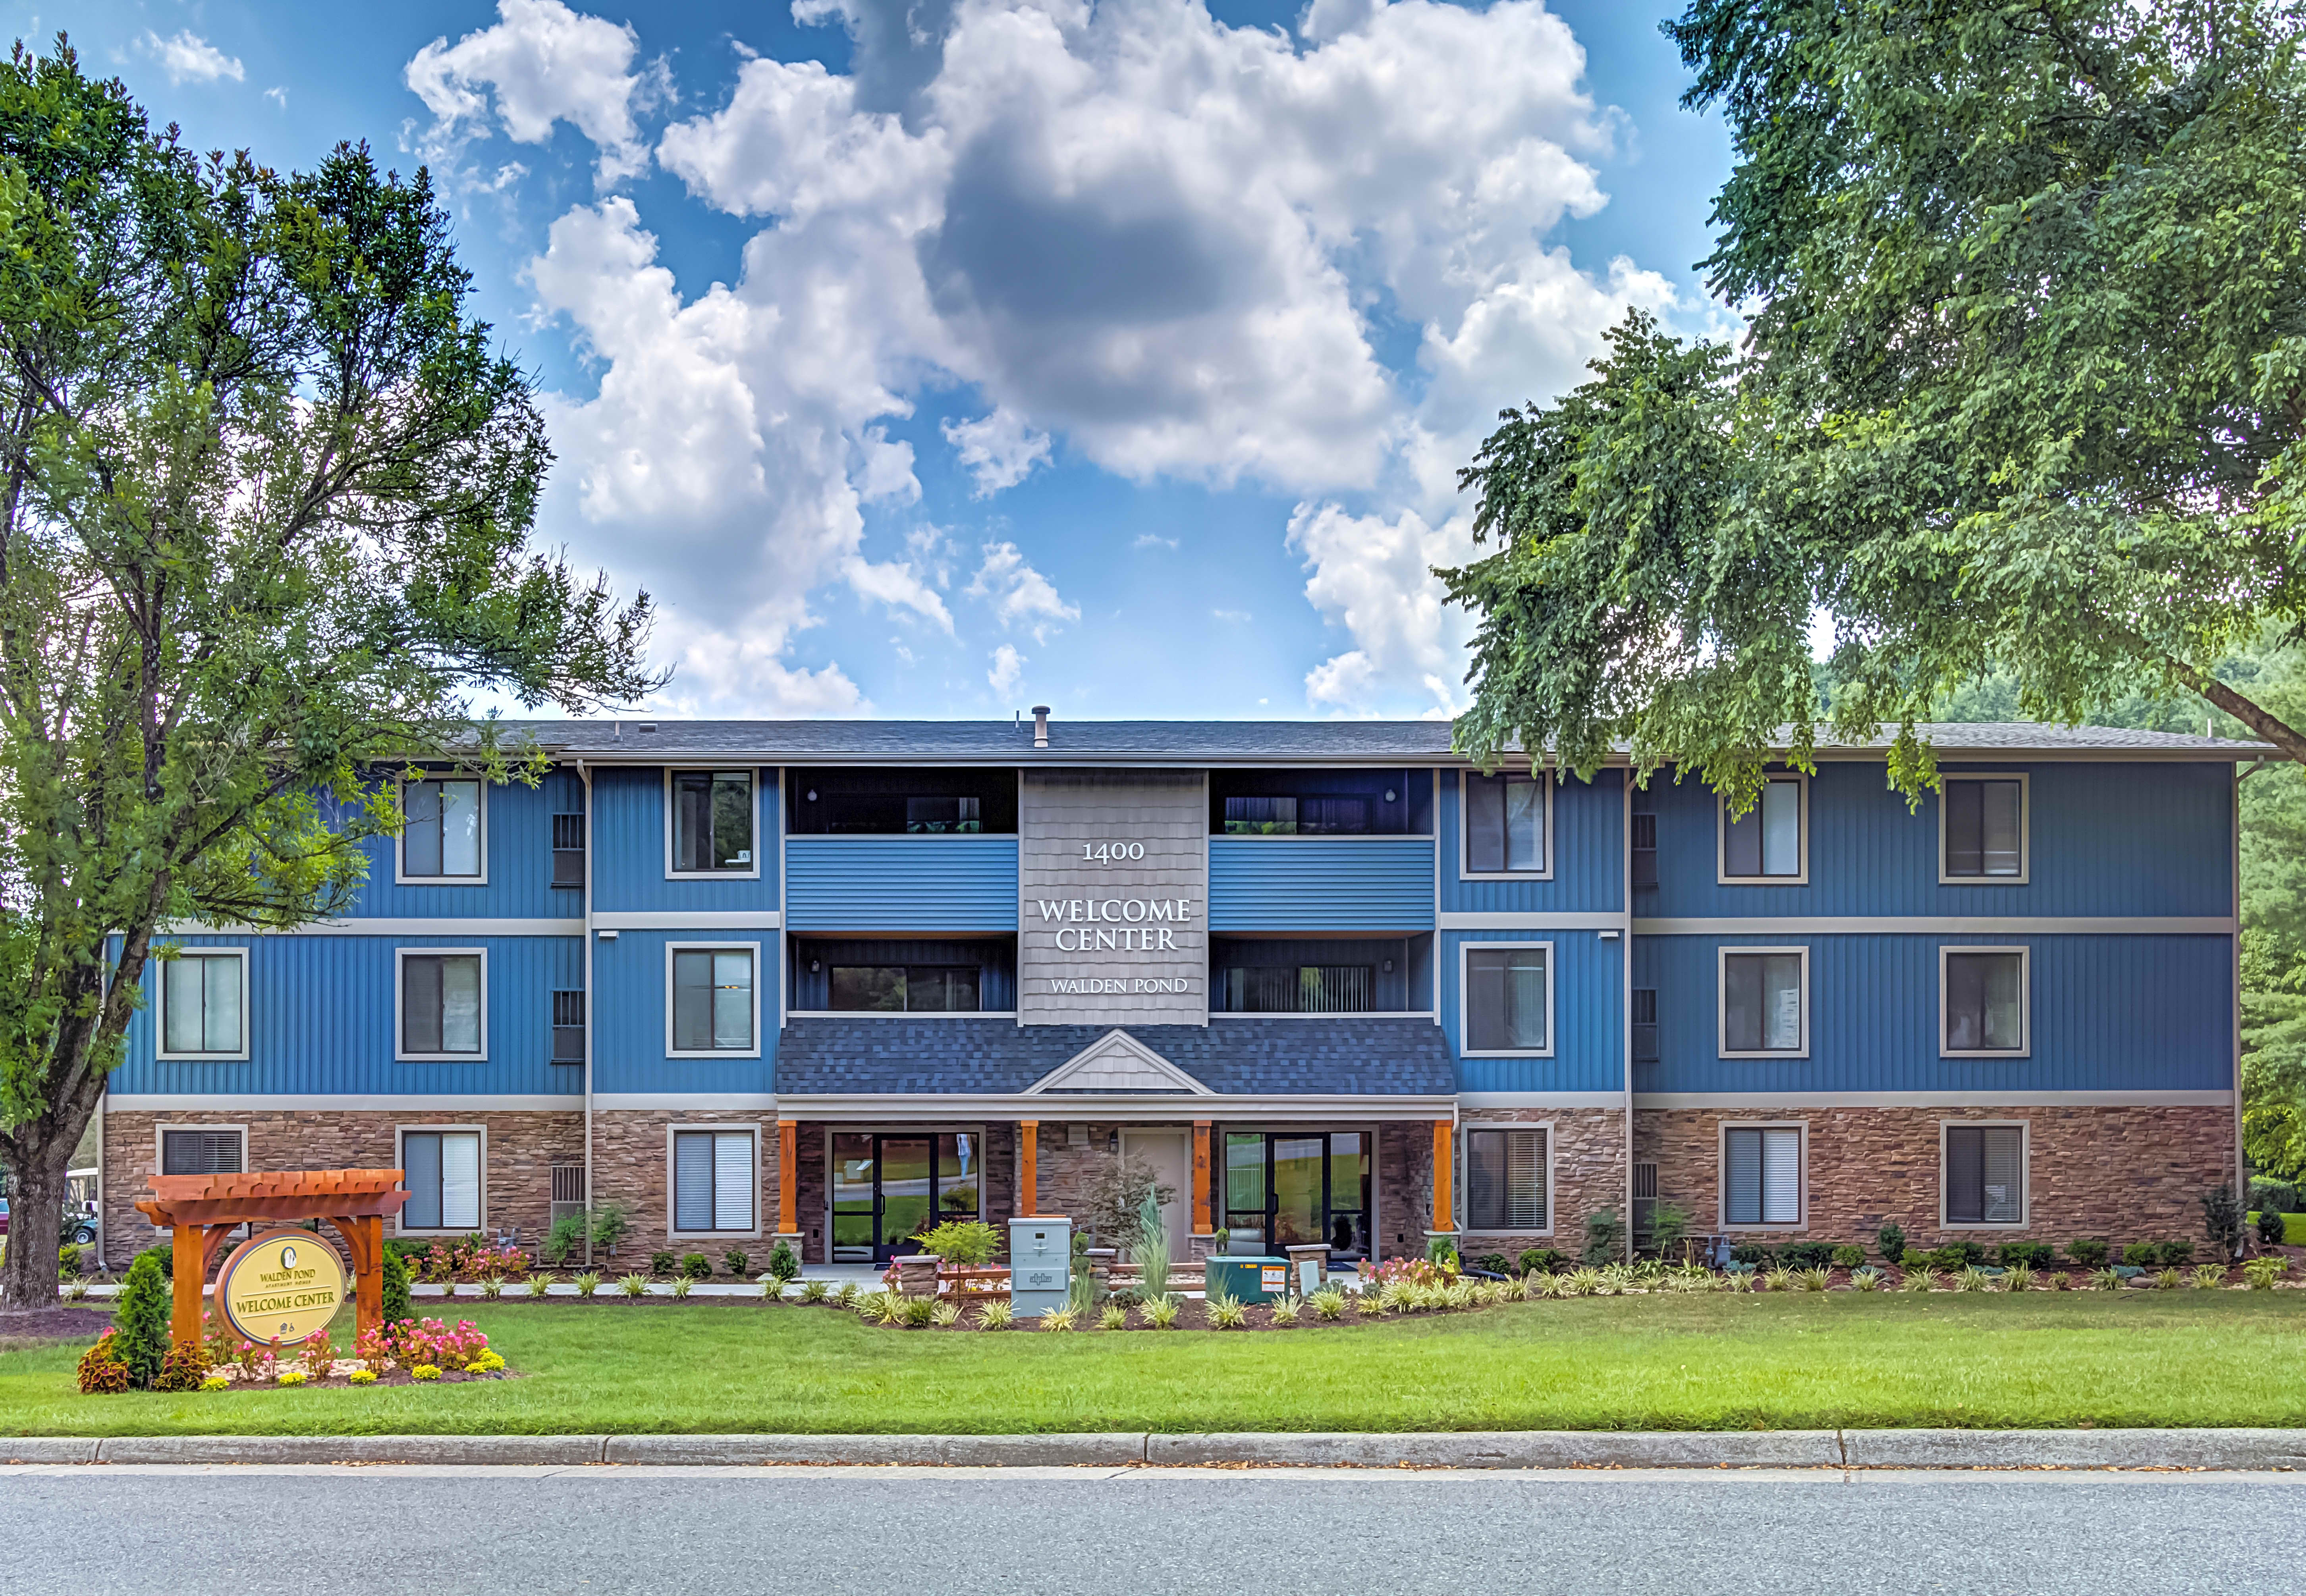 Apartments Near Sweet Briar Walden Pond for Sweet Briar College Students in Sweet Briar, VA